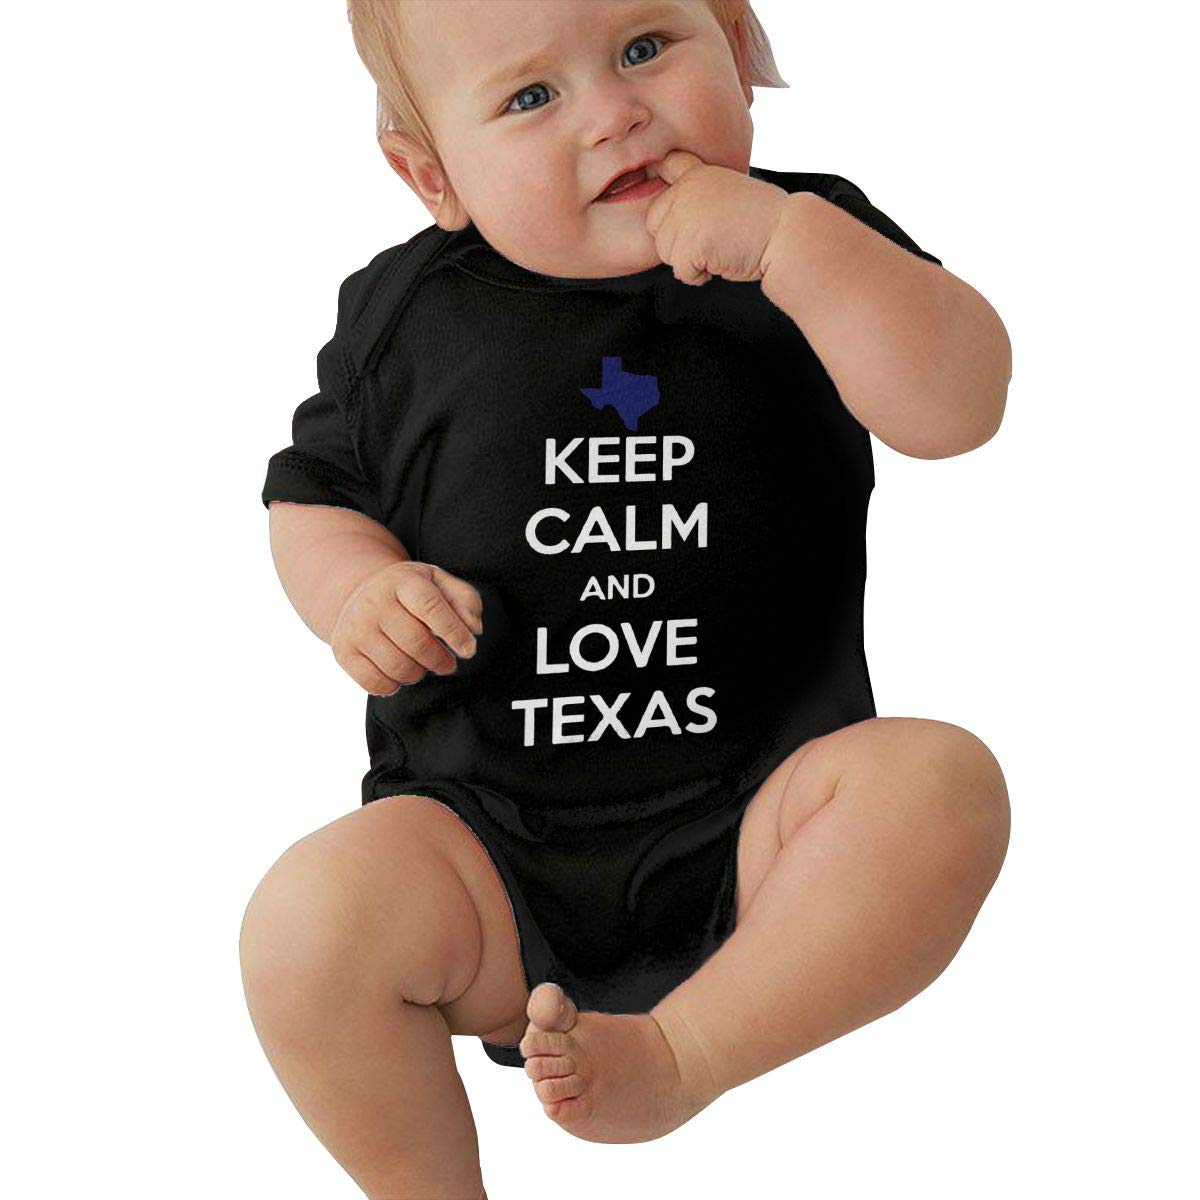 Keep Calm and Love Texas Infant Baby Girl Boy Romper Jumpsuit Short Sleeve Bodysuit Tops Clothes